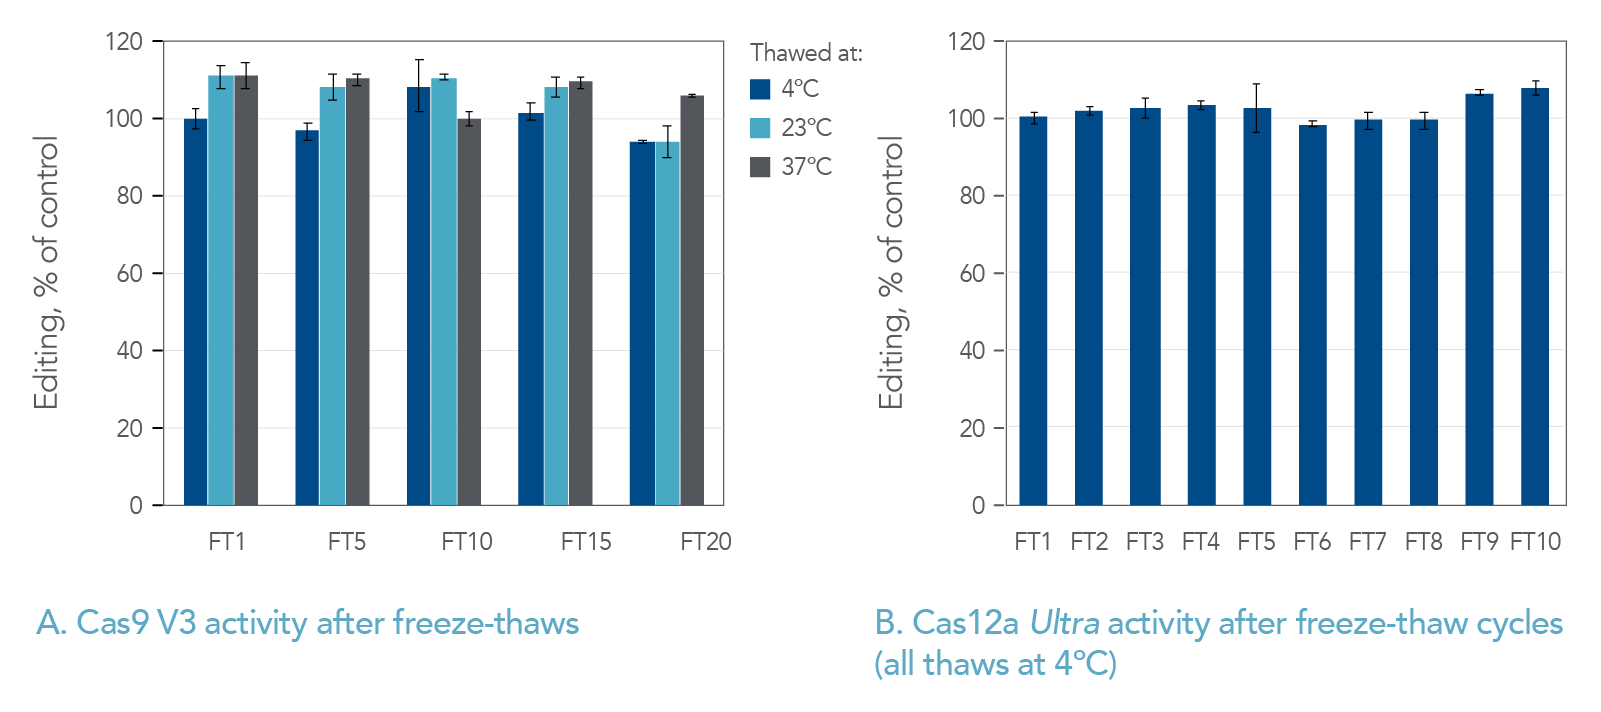 Cas activity after freeze-thaws